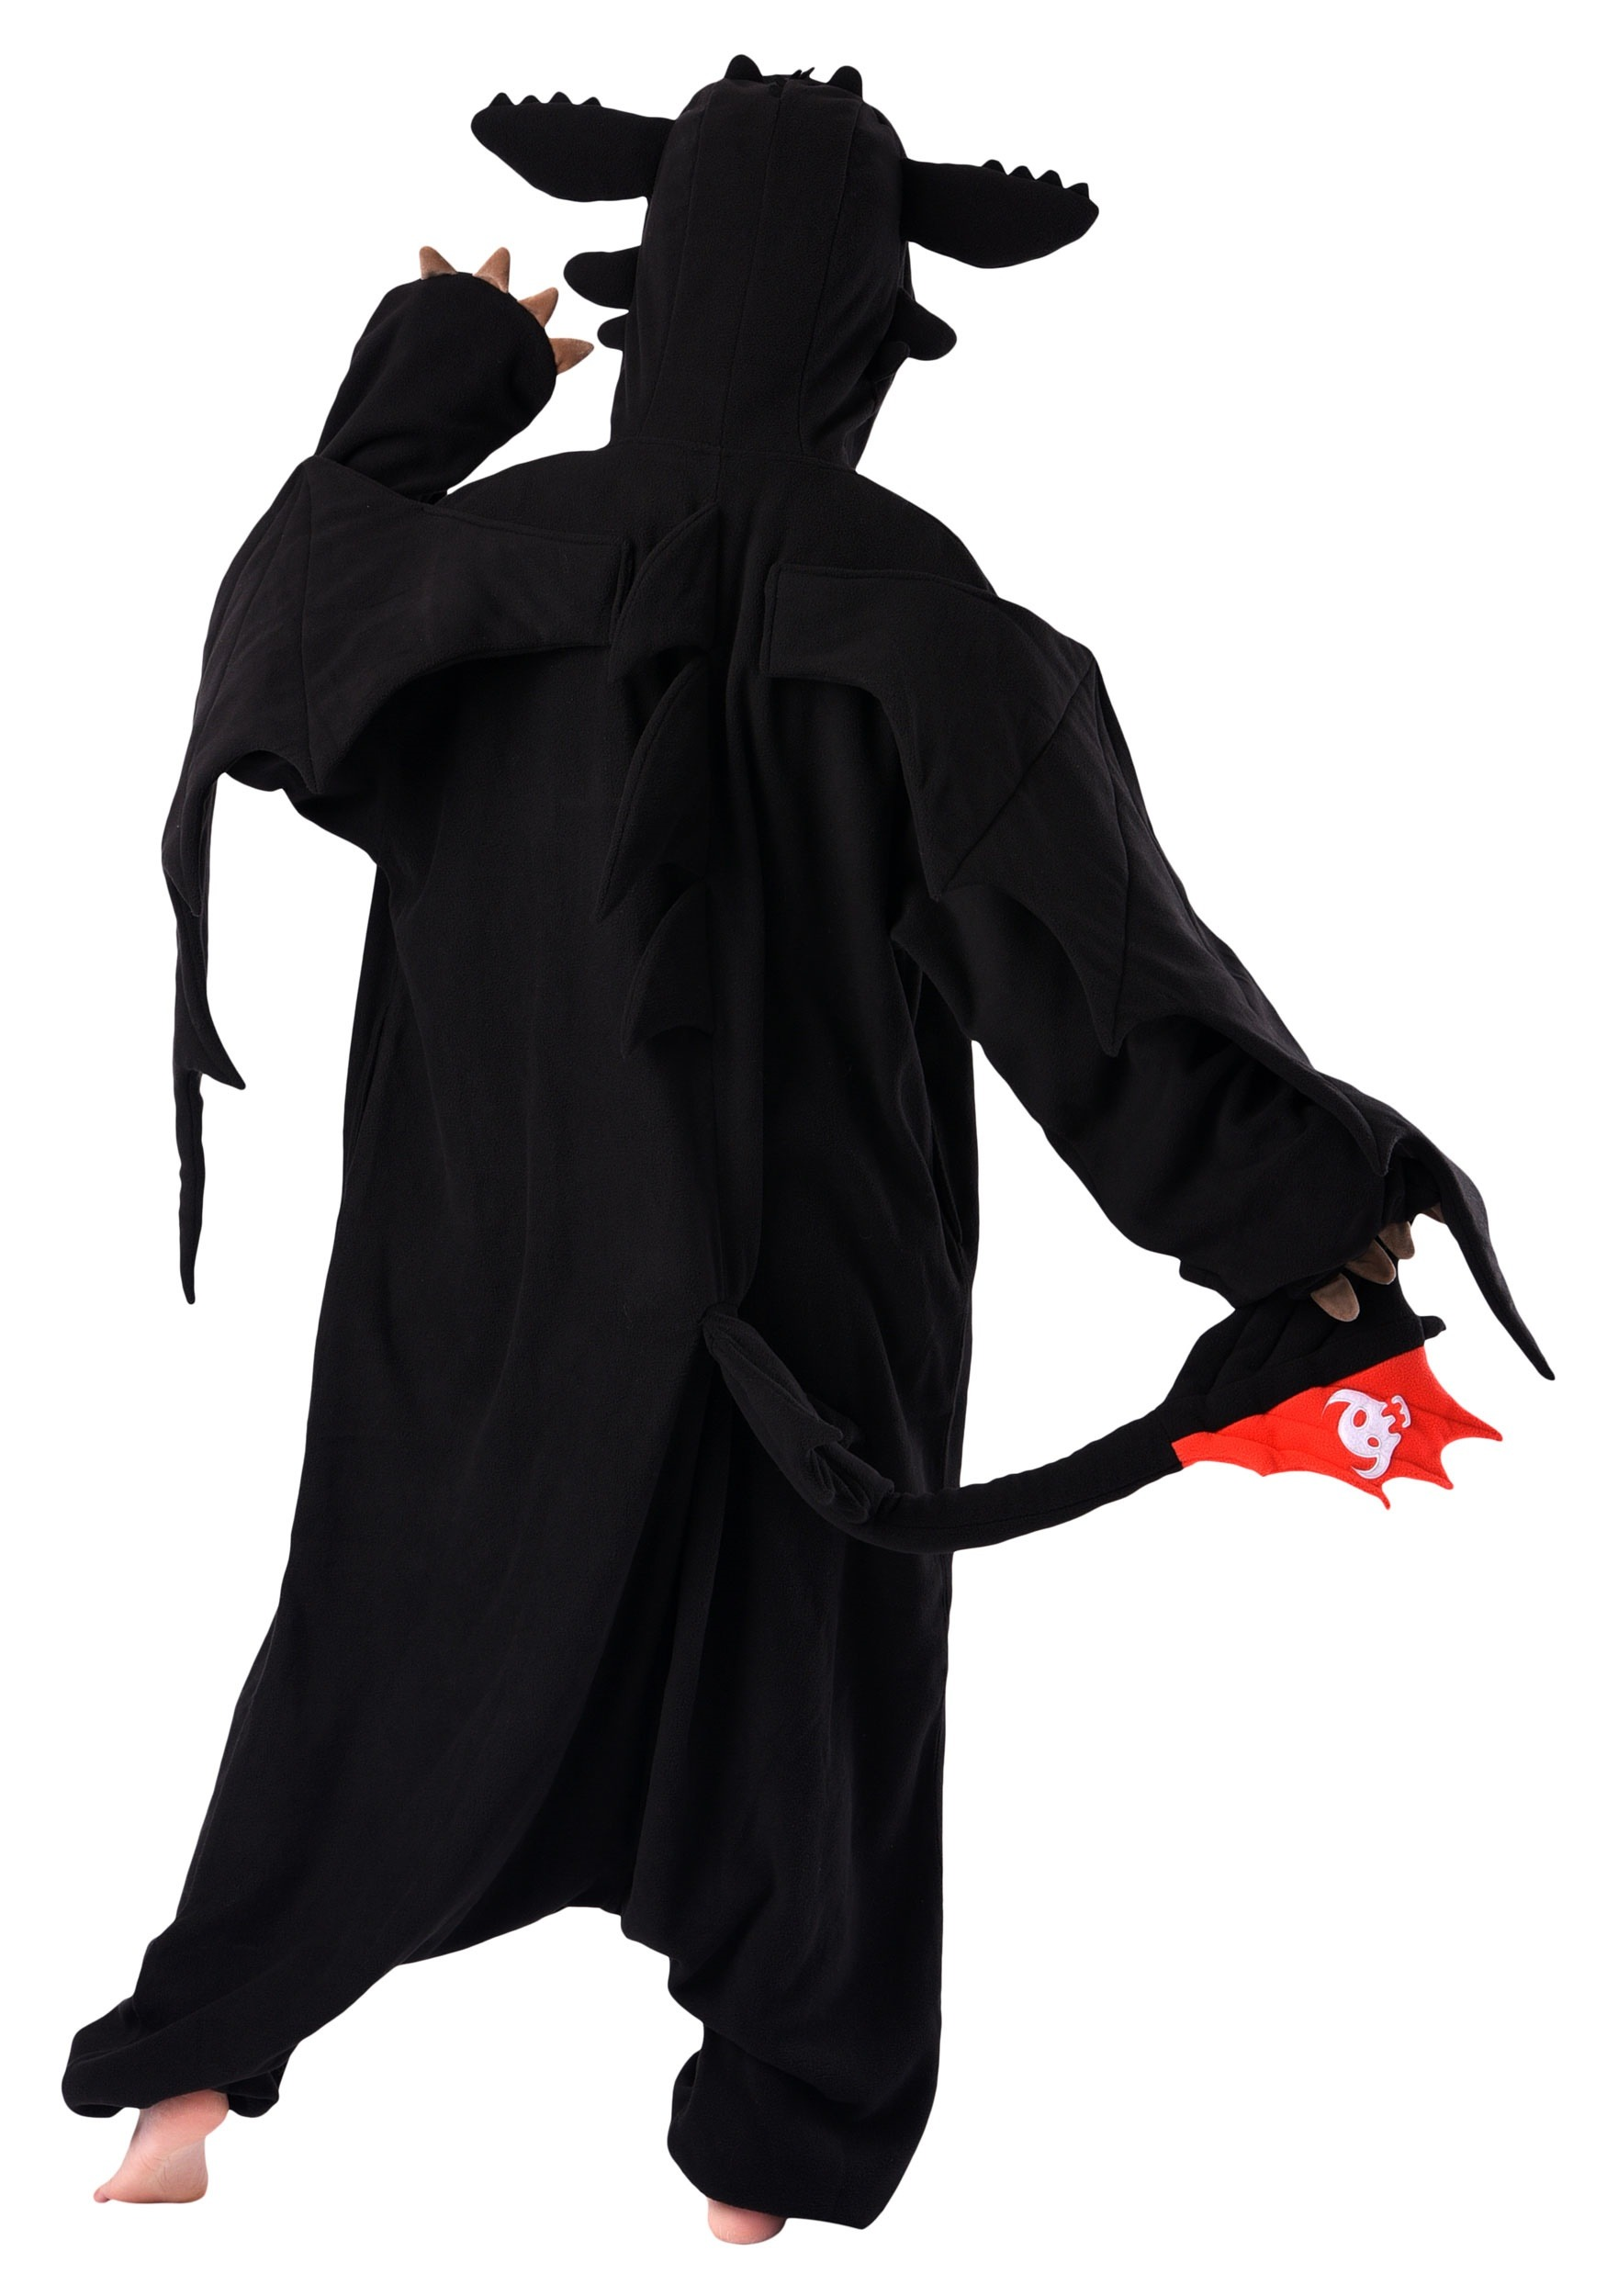 how to train your dragon toothless kigurumi costume for adults